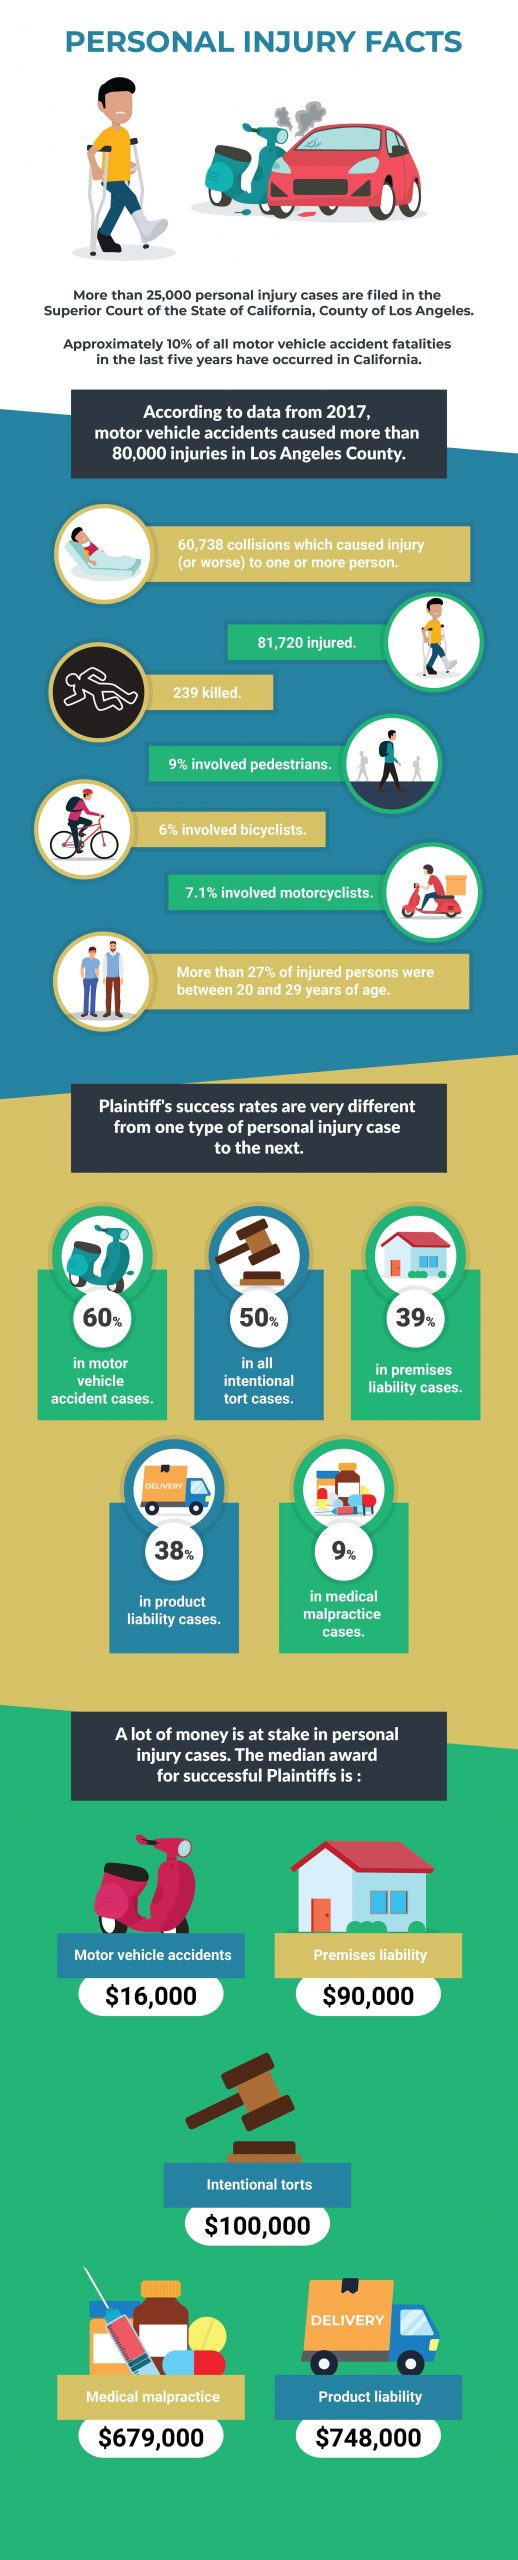 Los-Angeles-Personal-Injury-Facts-2020-infographic-plaza